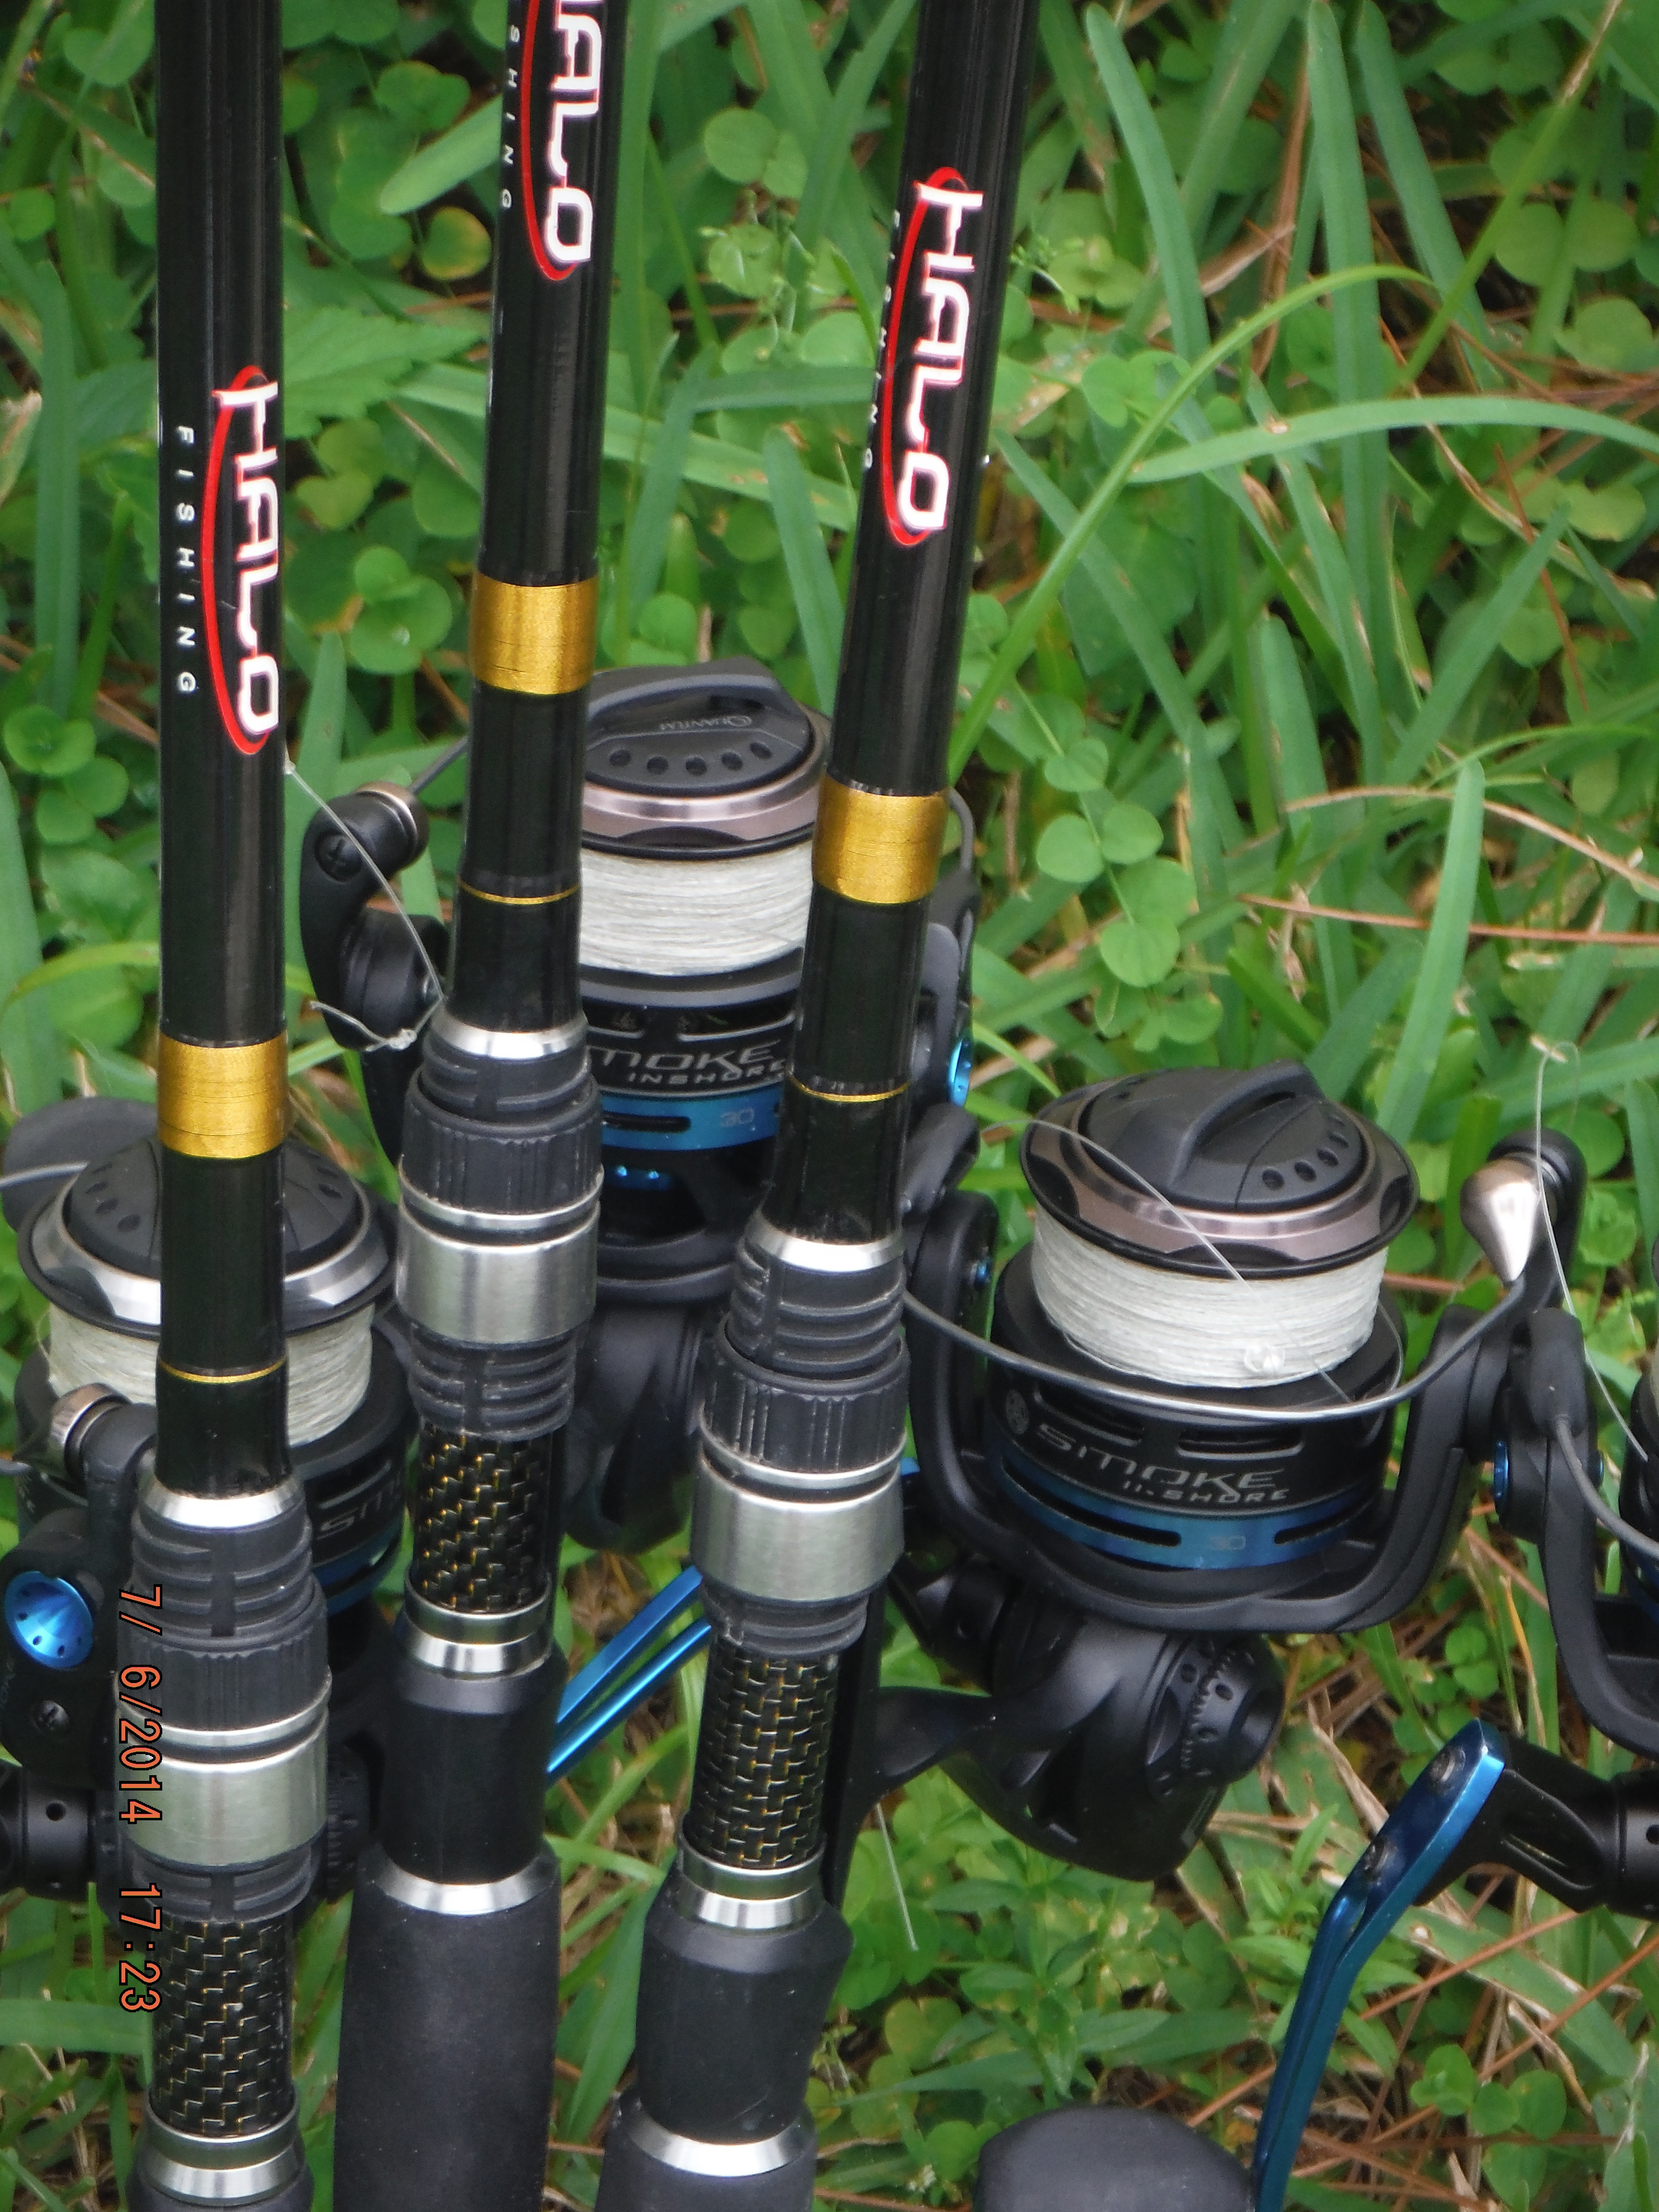 Anchors and ammo captiva july 2014 for Halo fishing rods